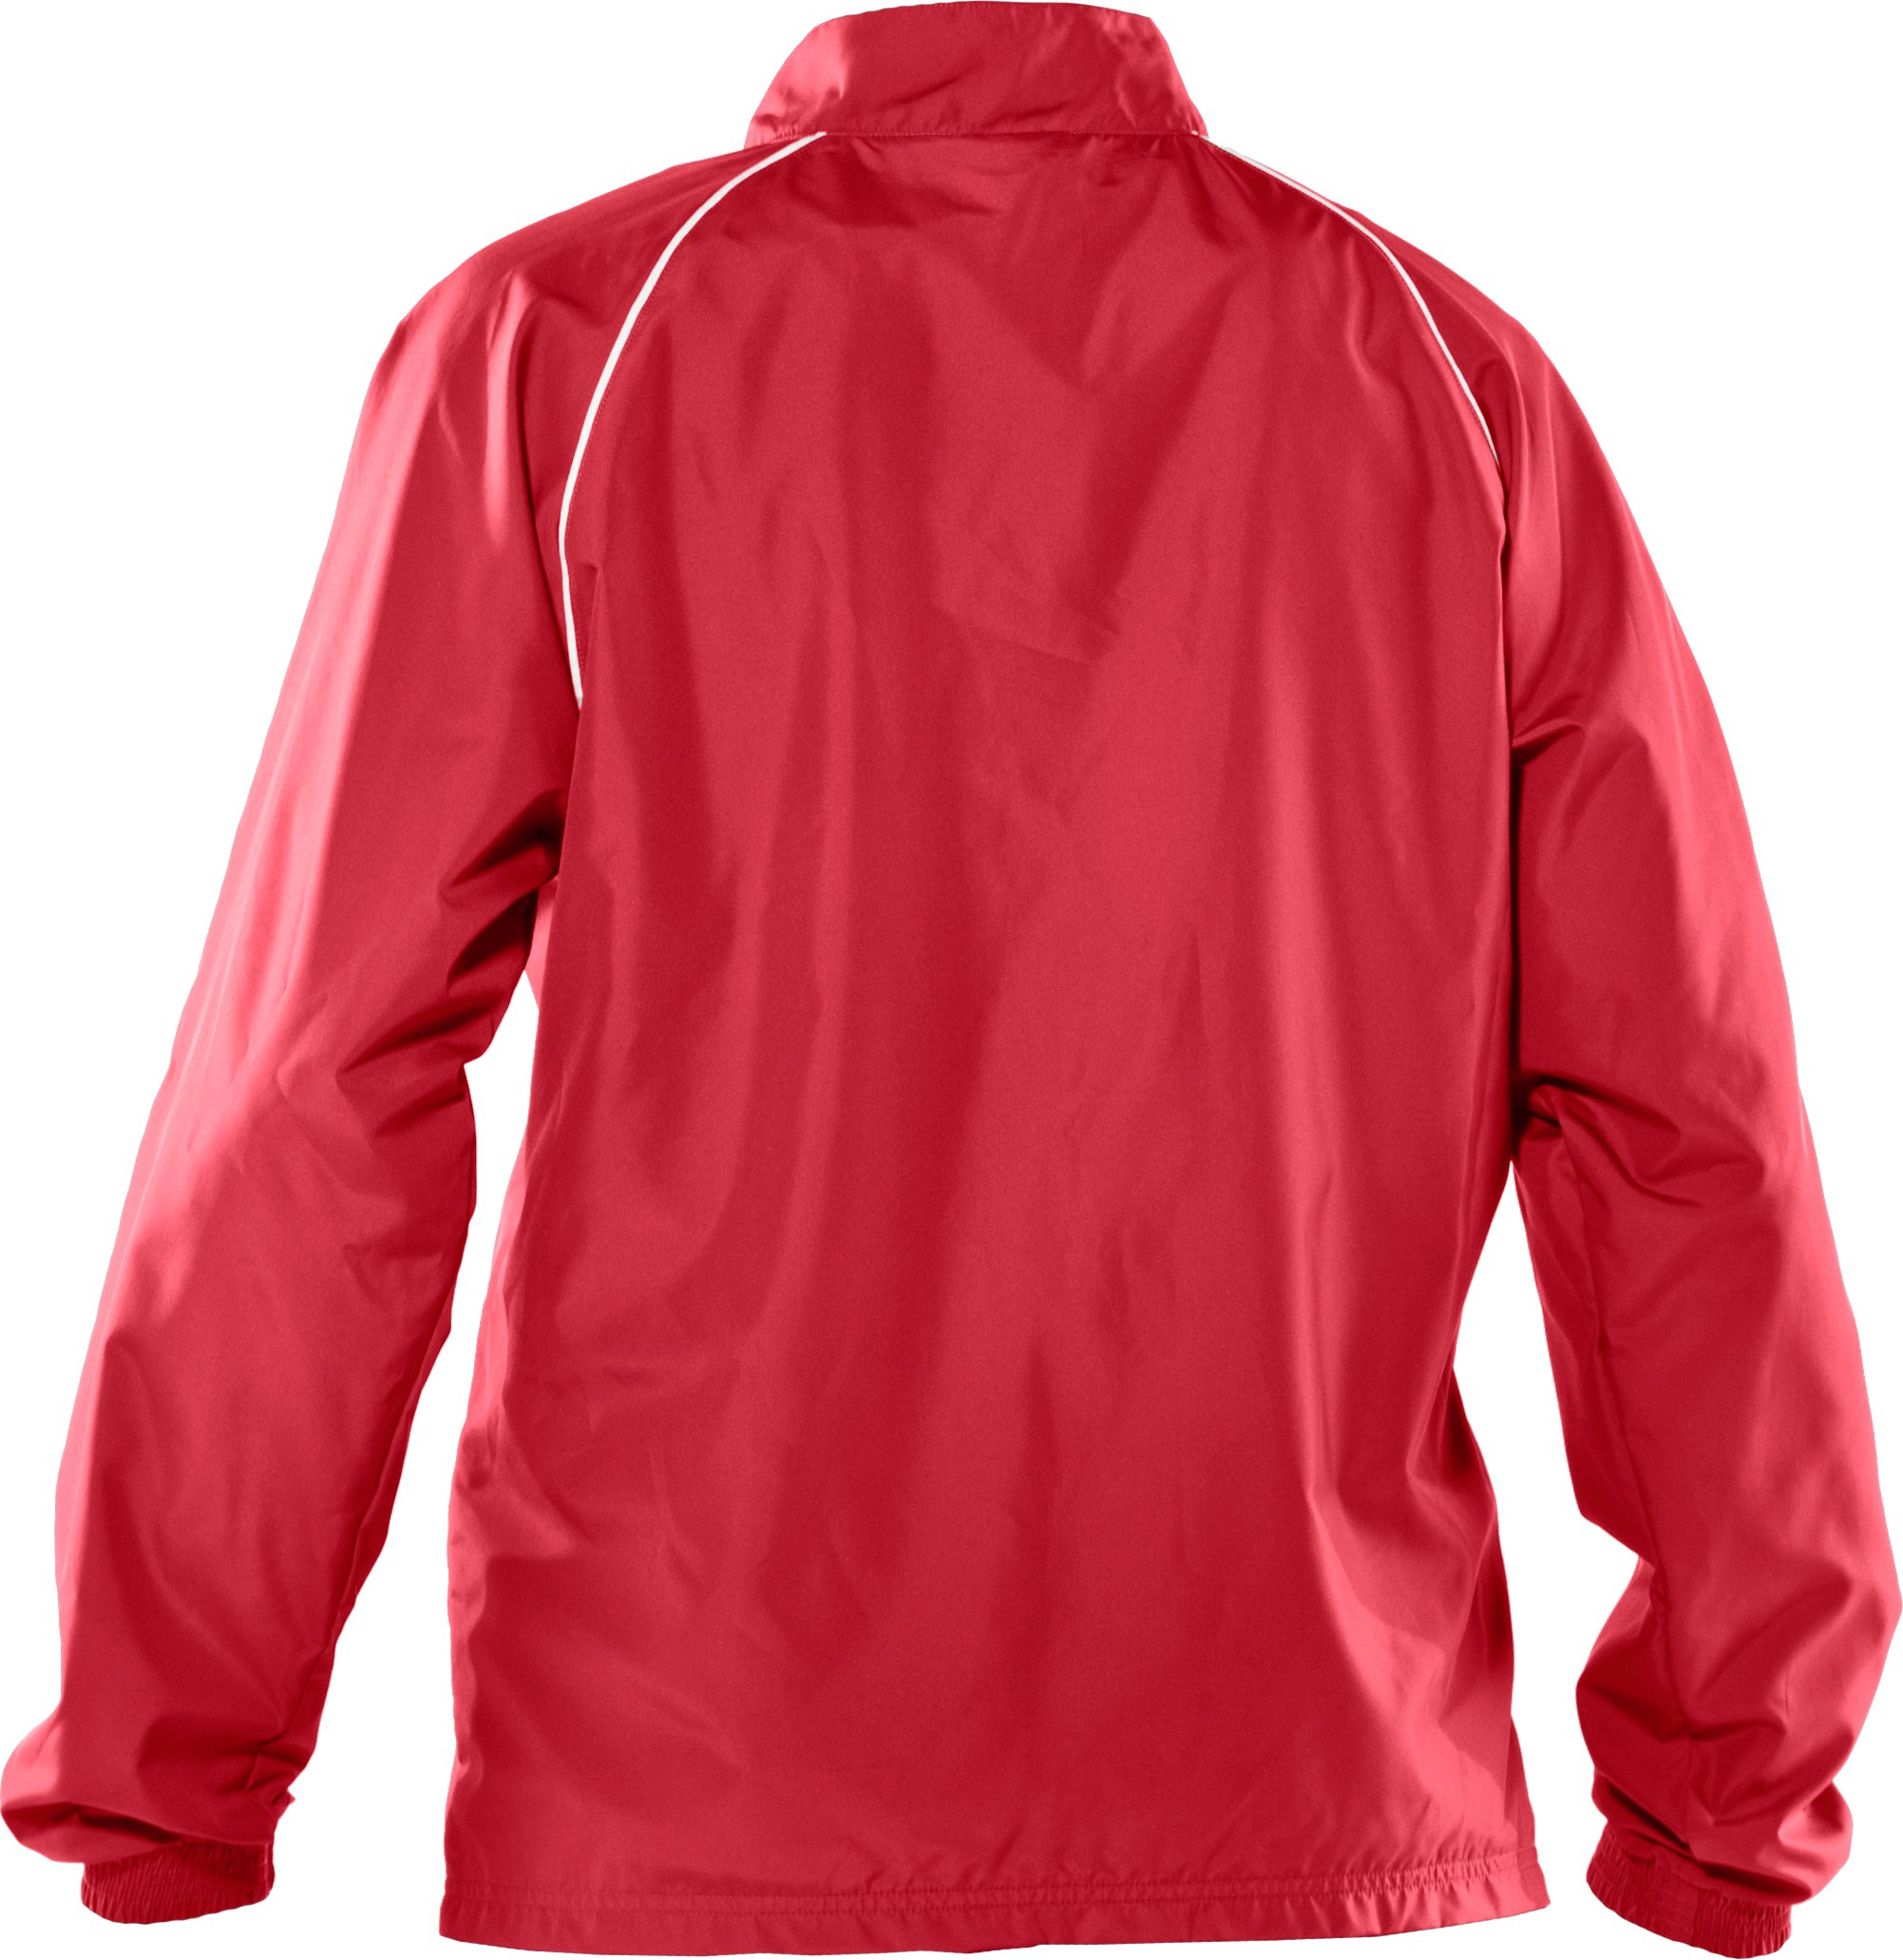 Women's Advance Woven Warm-Up Jacket, Red